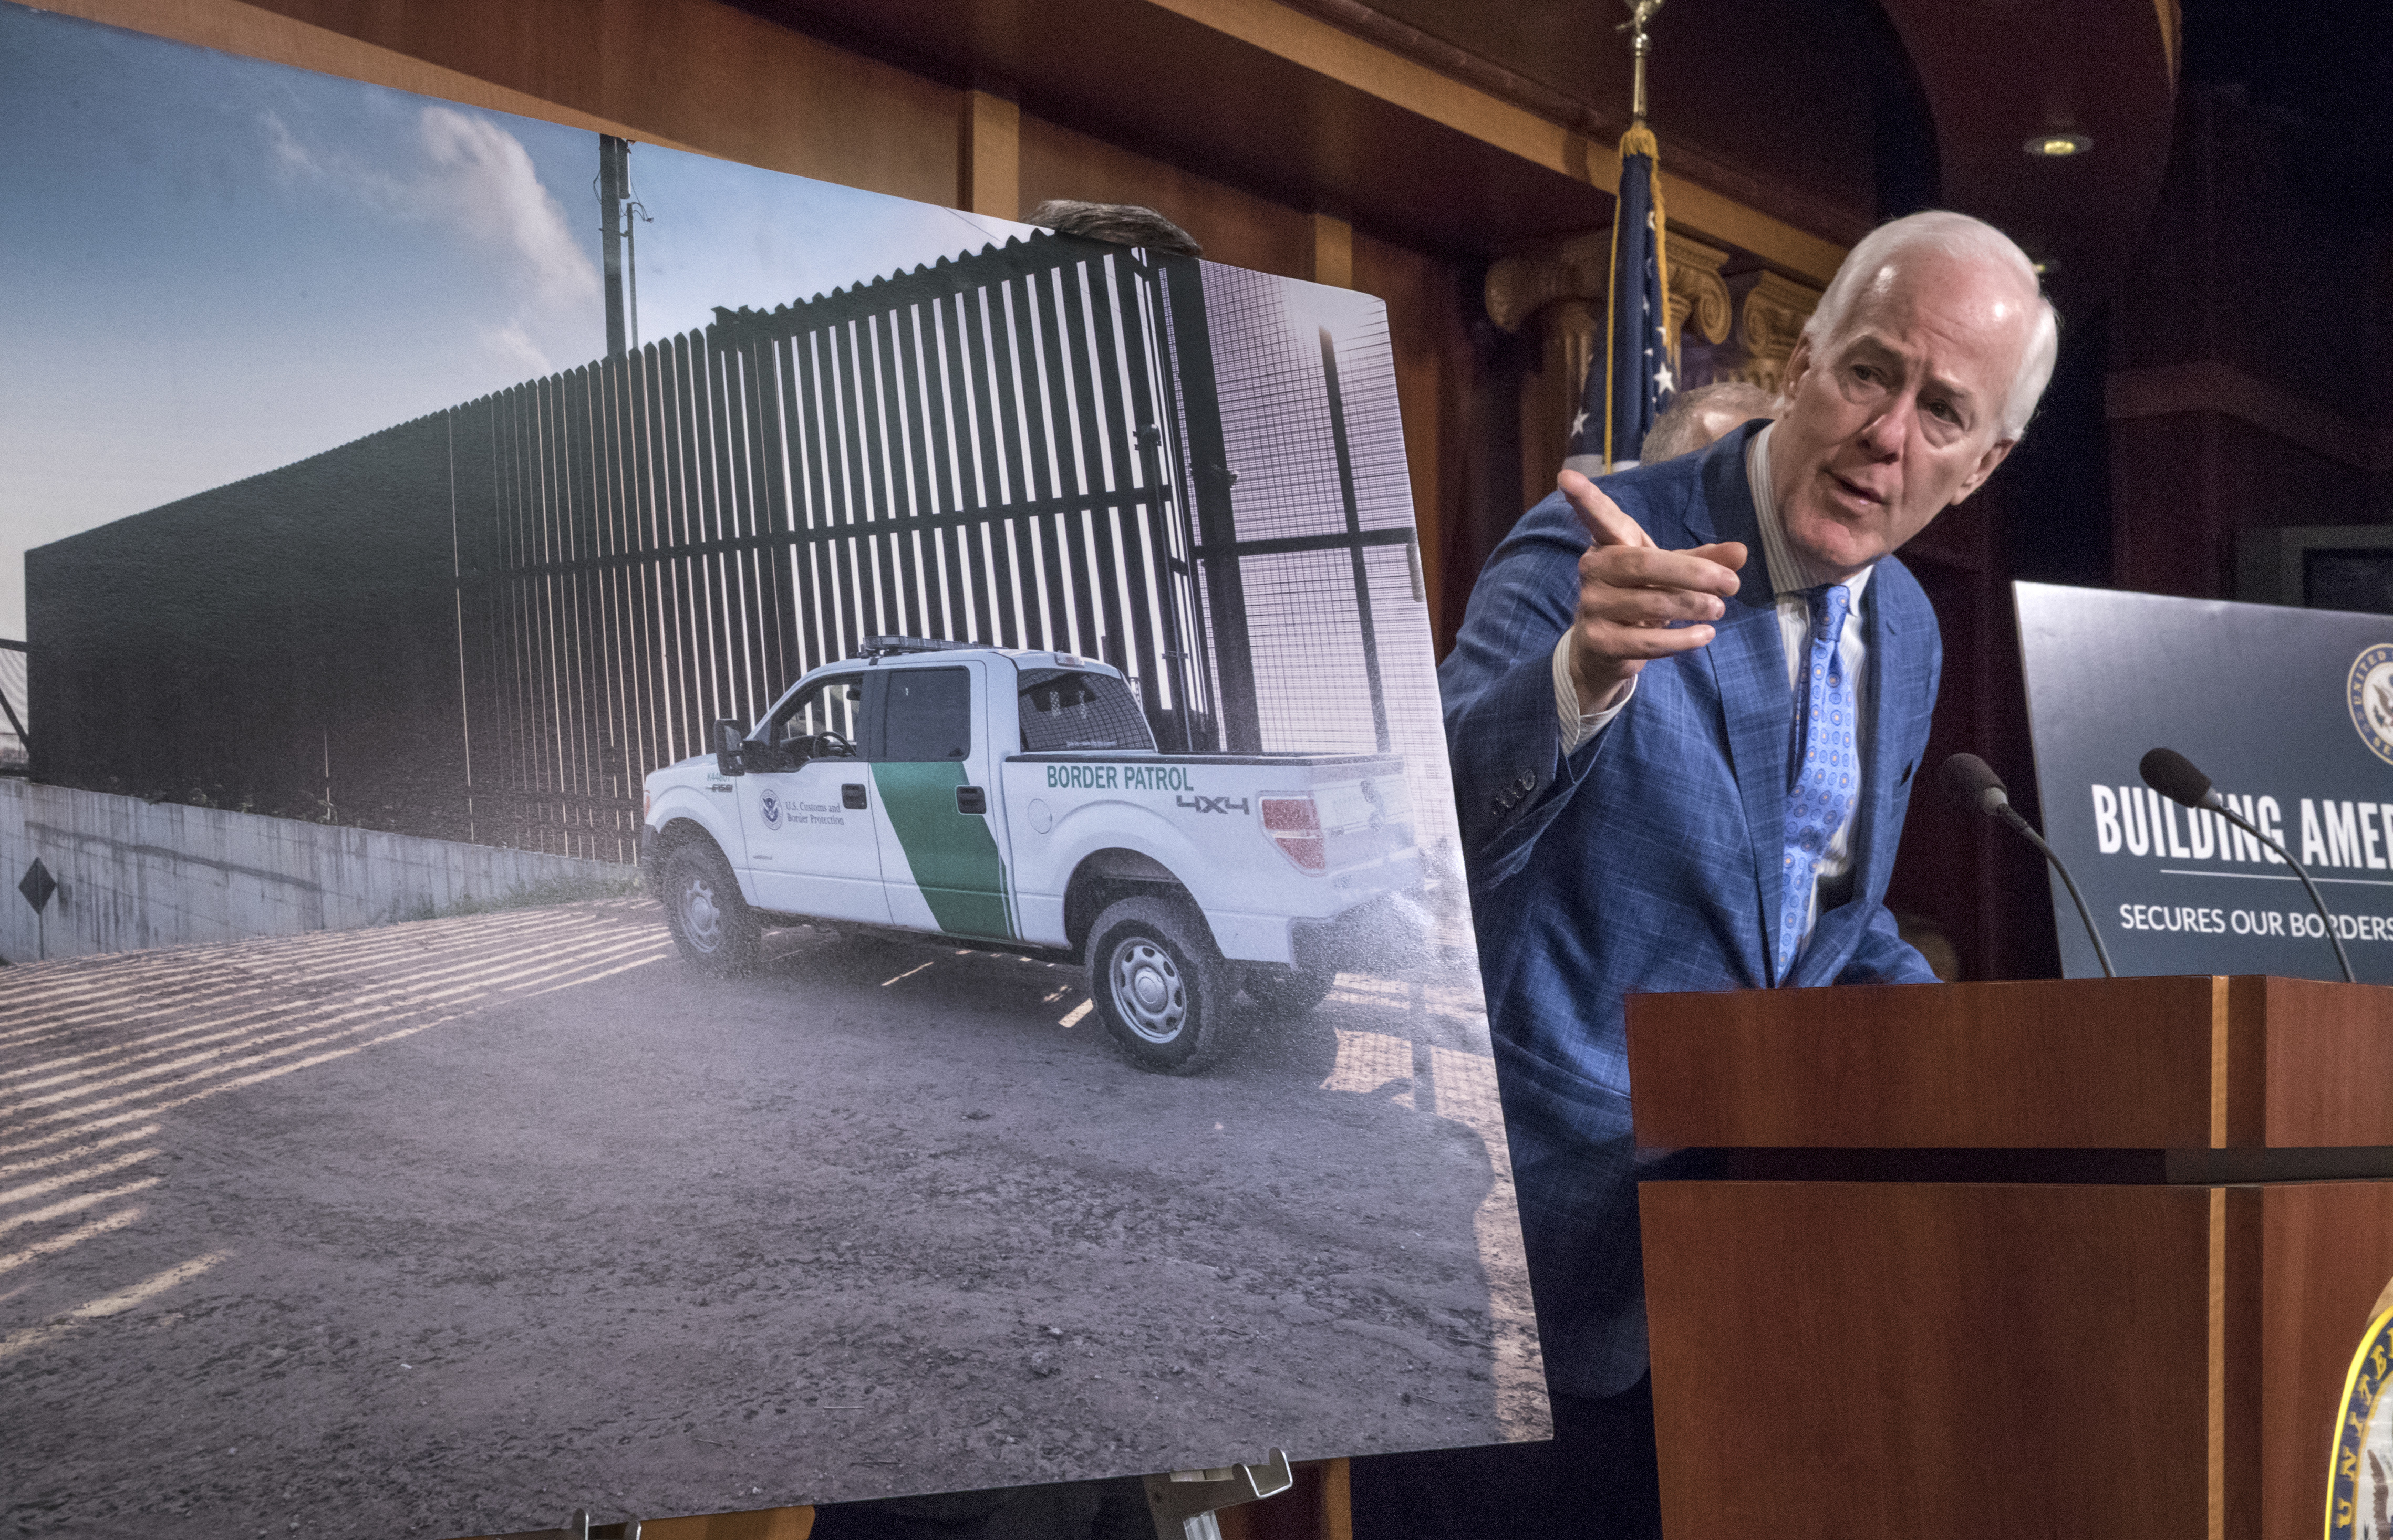 Senate Majority Whip John Cornyn of Texas points to a poster as he talks to reporters about border security on Capitol Hill, Washington, Aug. 3, 2017.